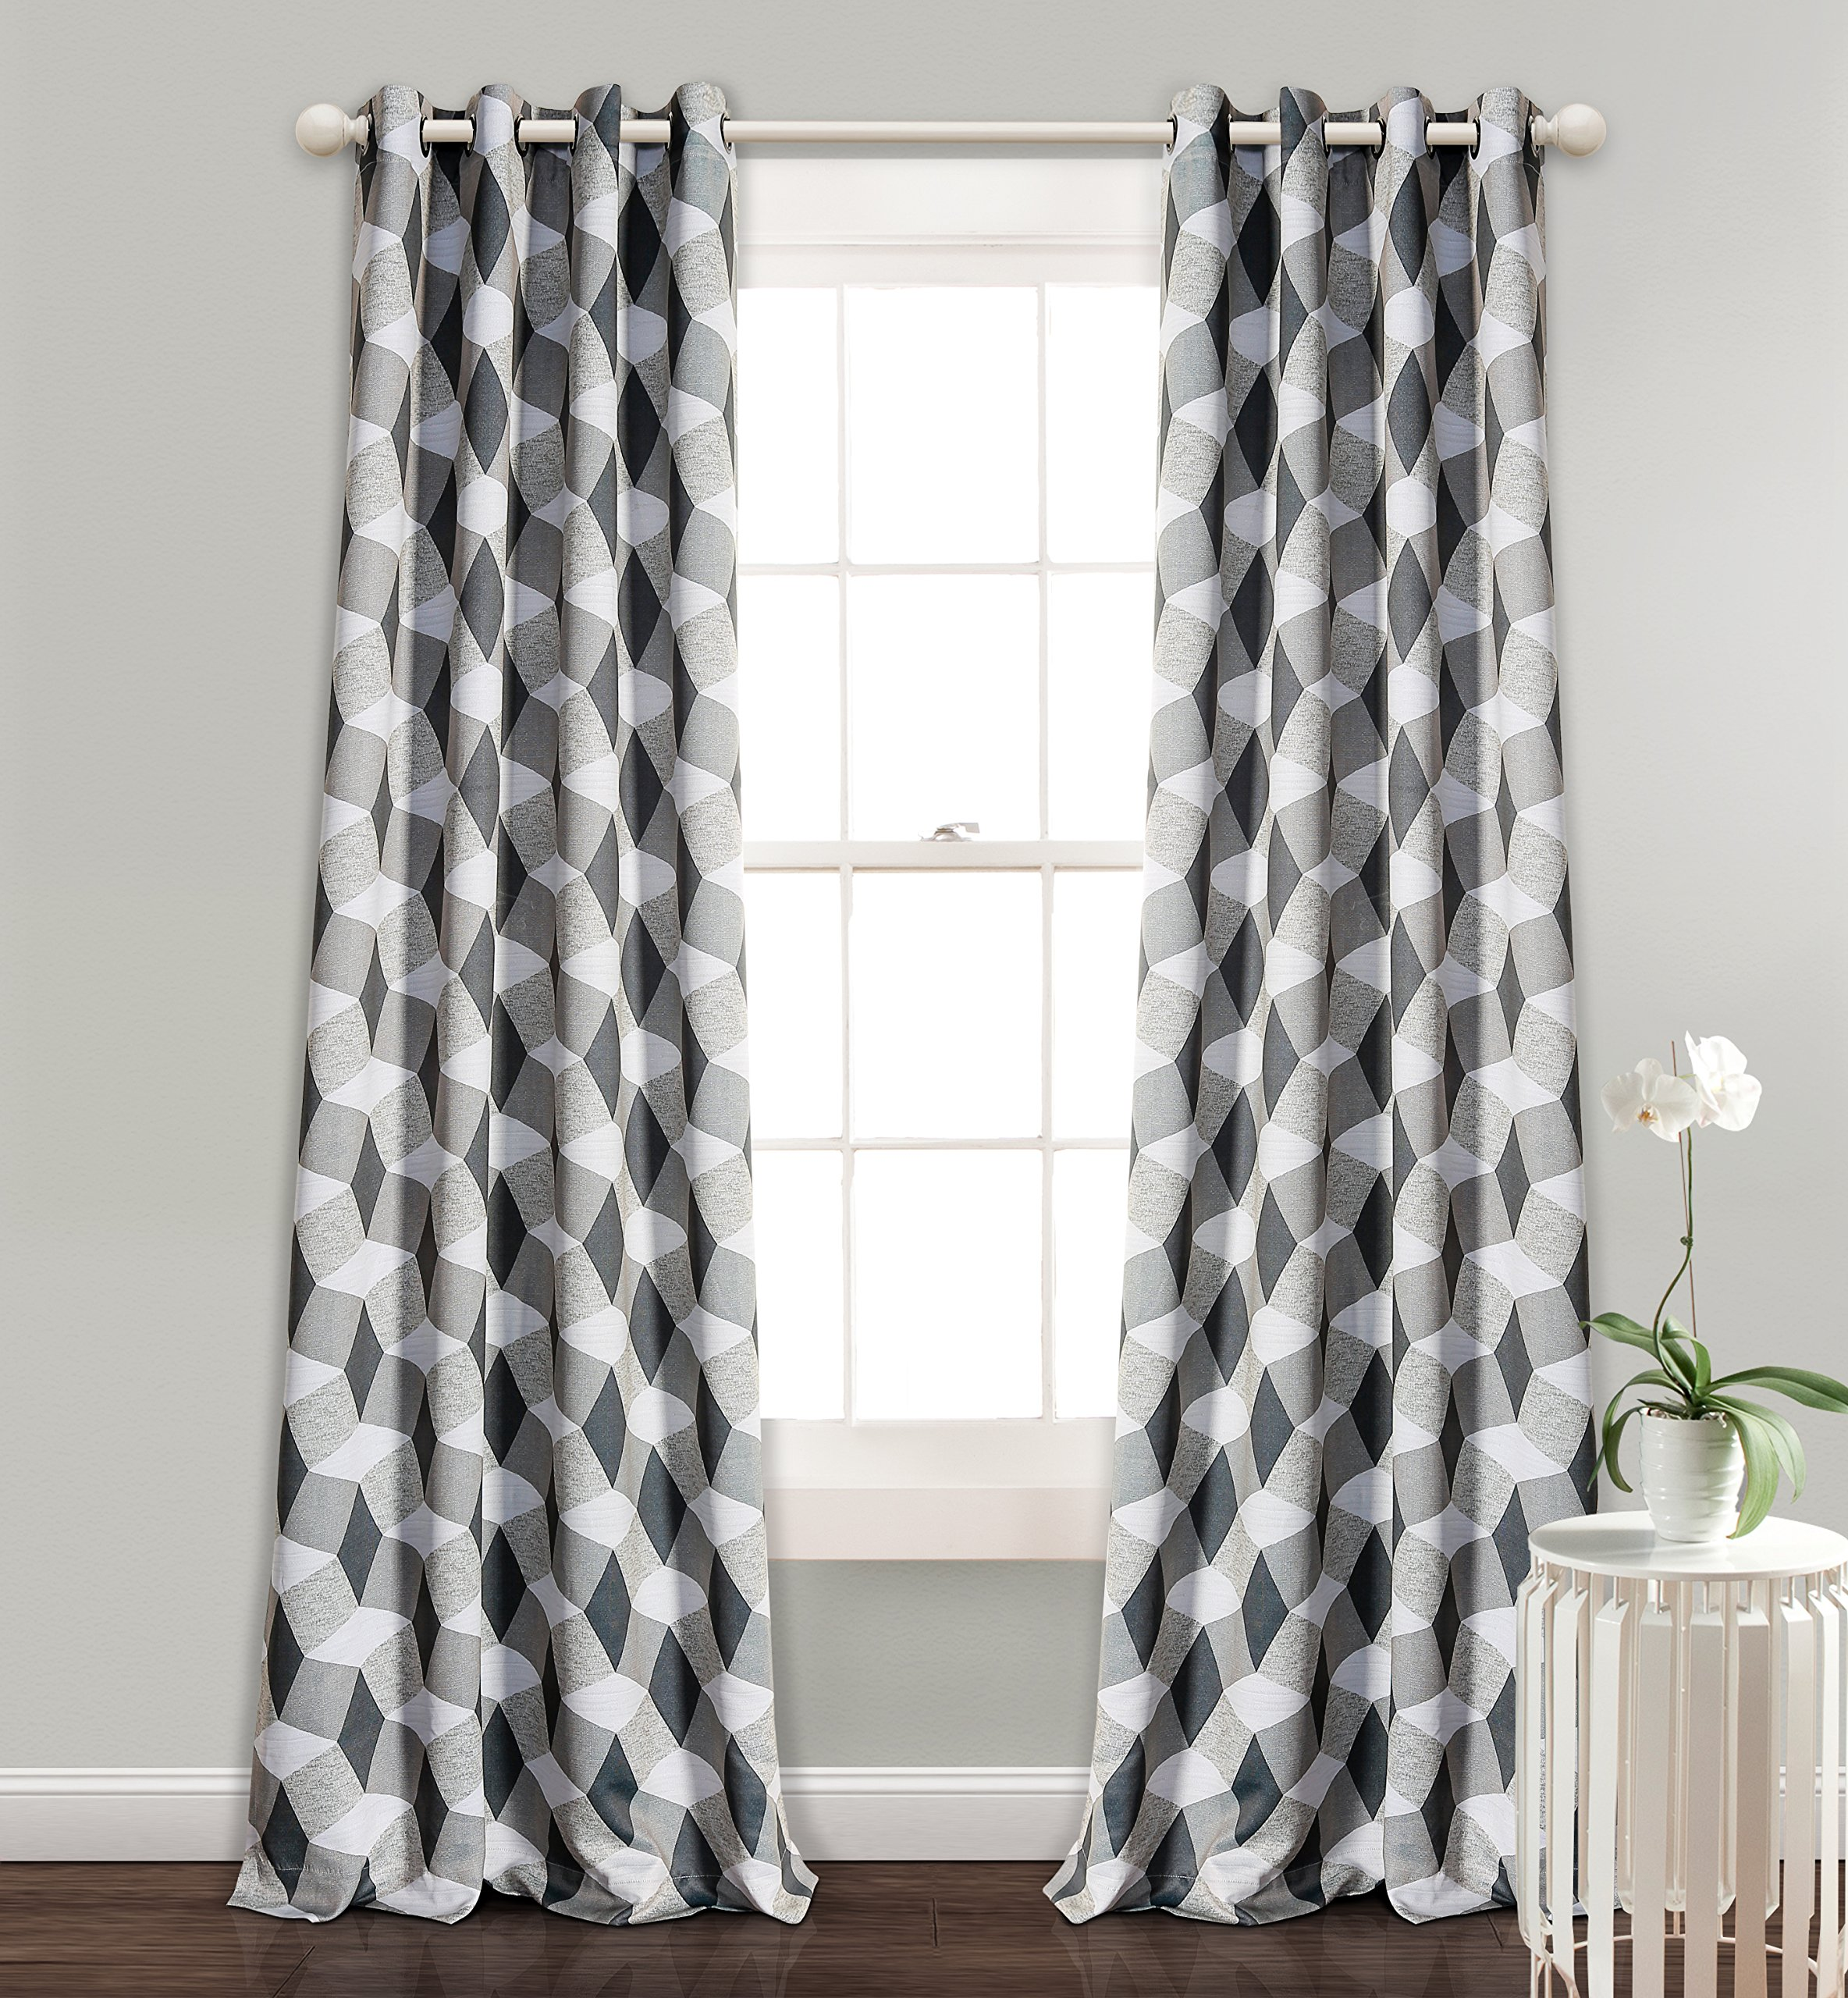 MYSKY HOME 3D Geometry Fashion Design Print Thermal Insulated Blackout Curtain with Grommet Top for Living Room, 52 by 95 inch, Dark Grey - 1 Panel